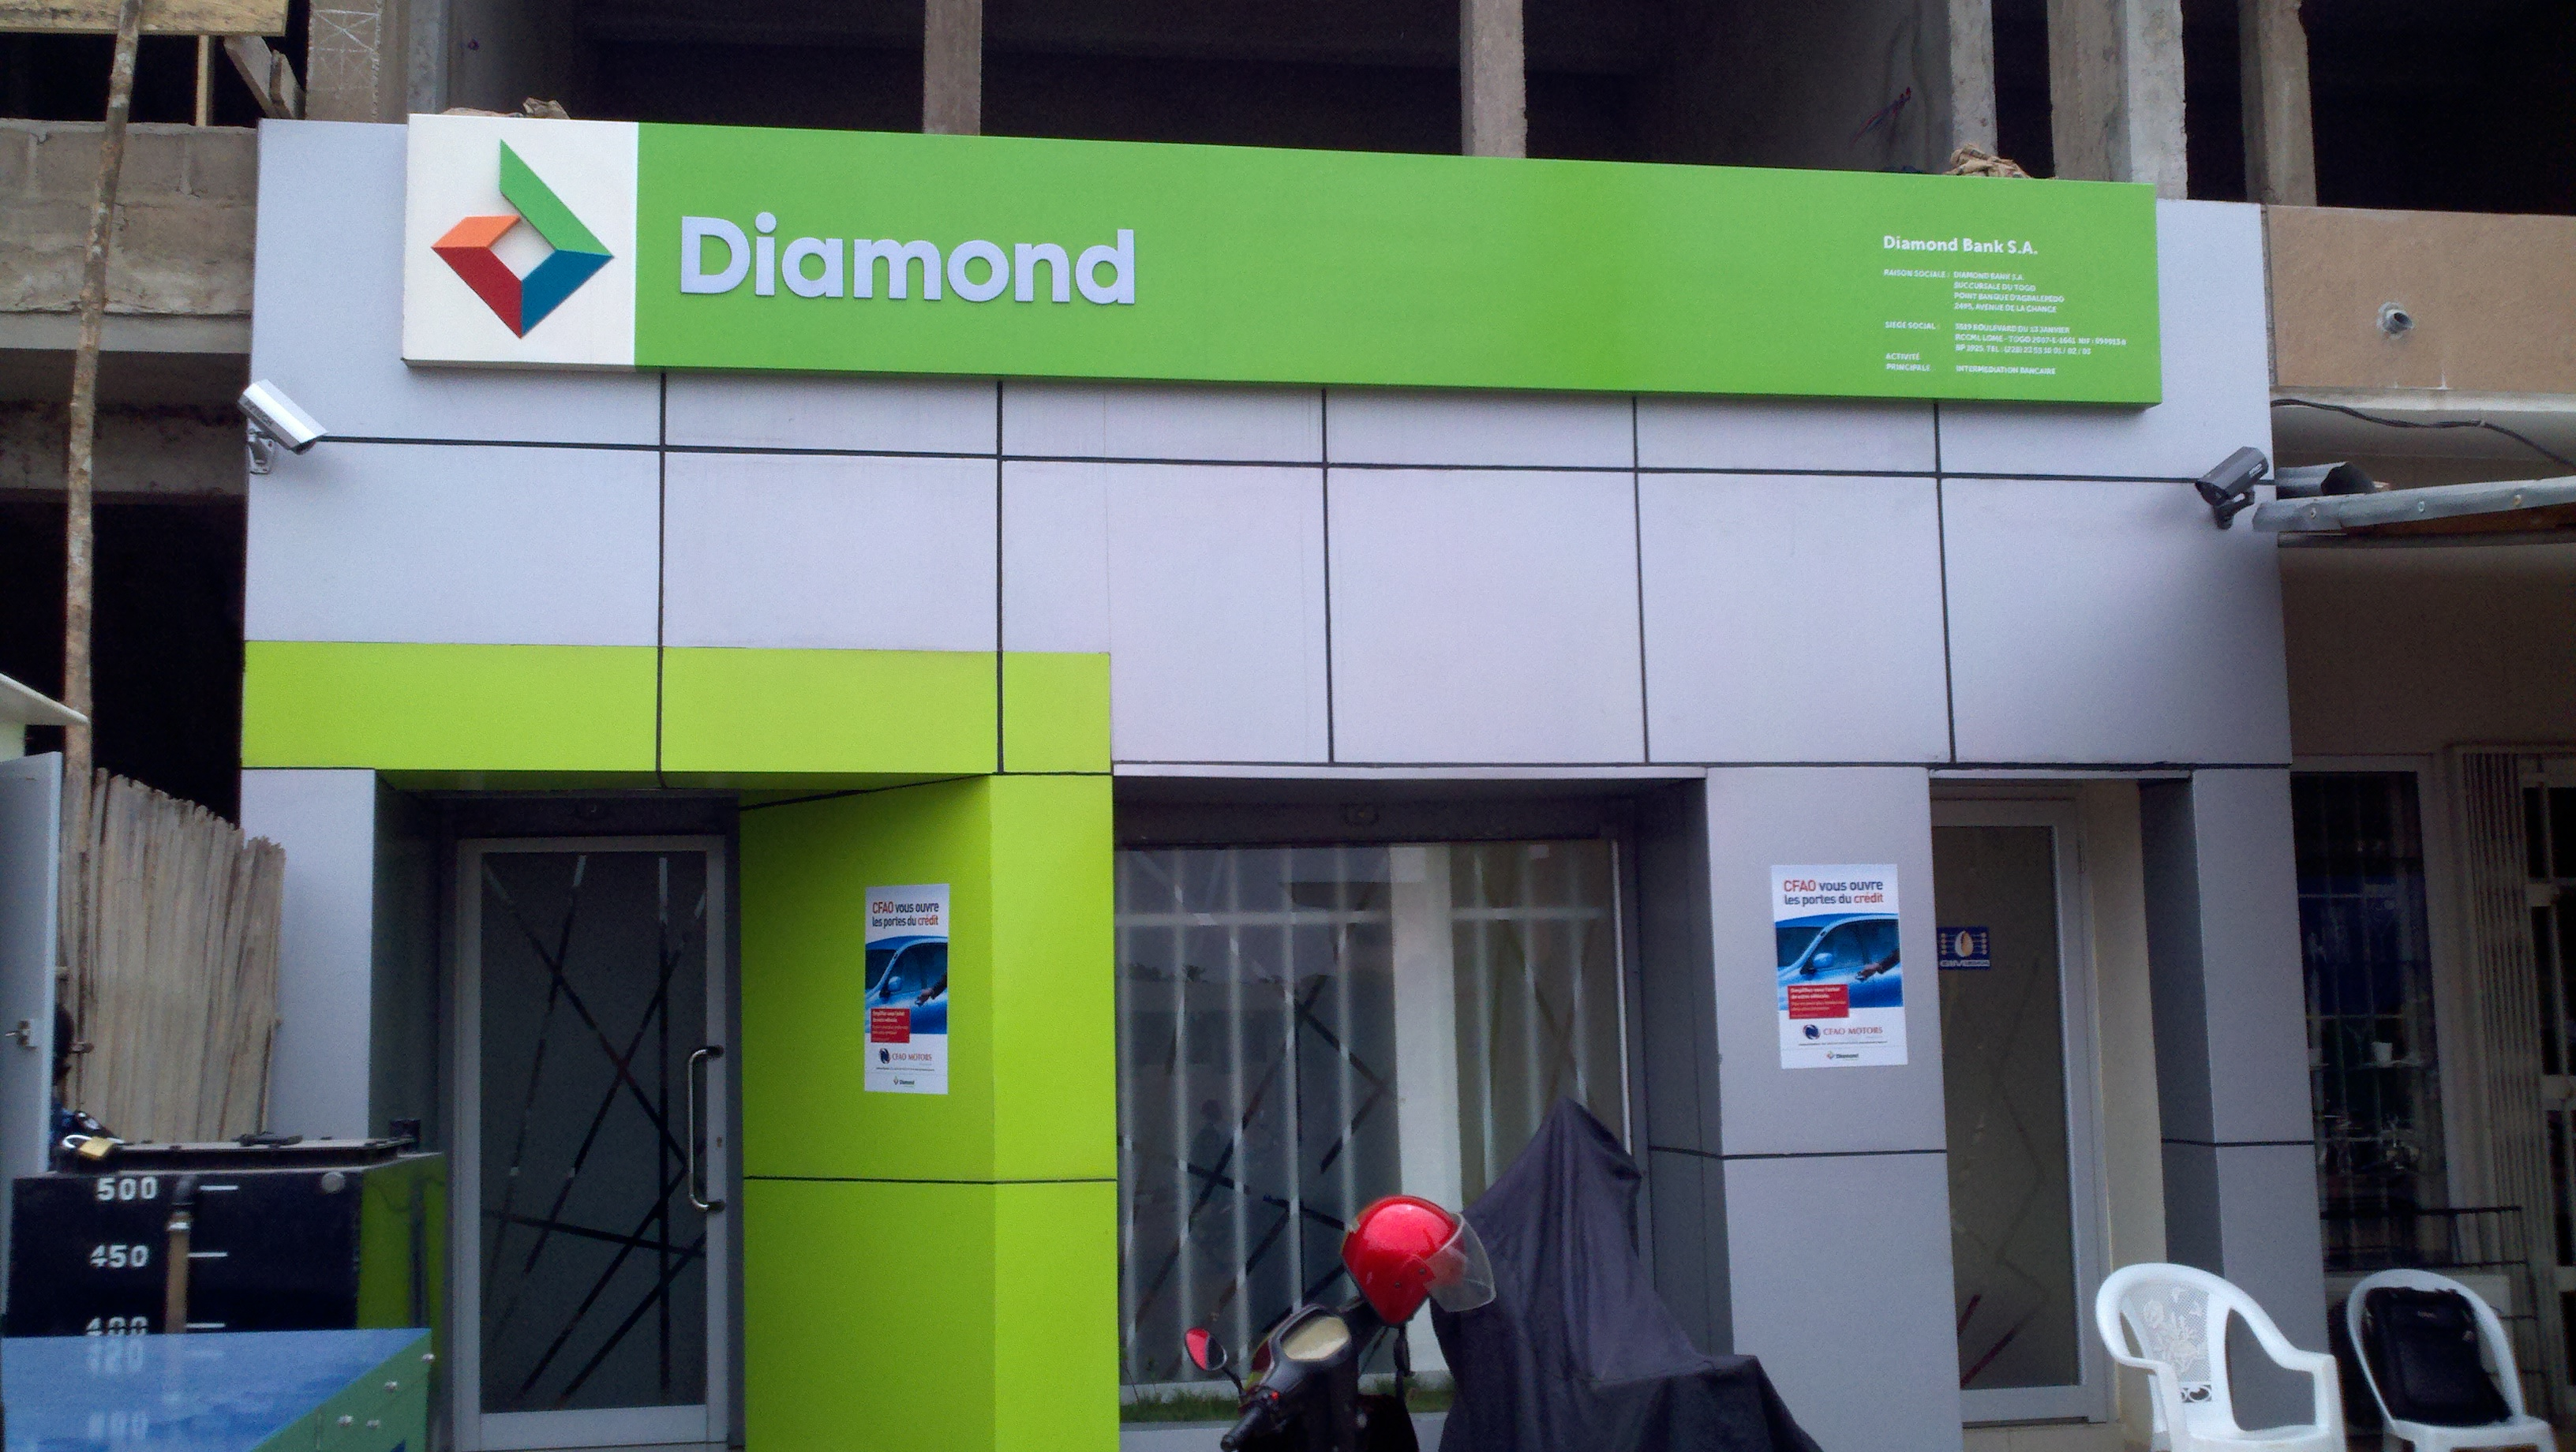 Diamond bank Sort Codes and Branches